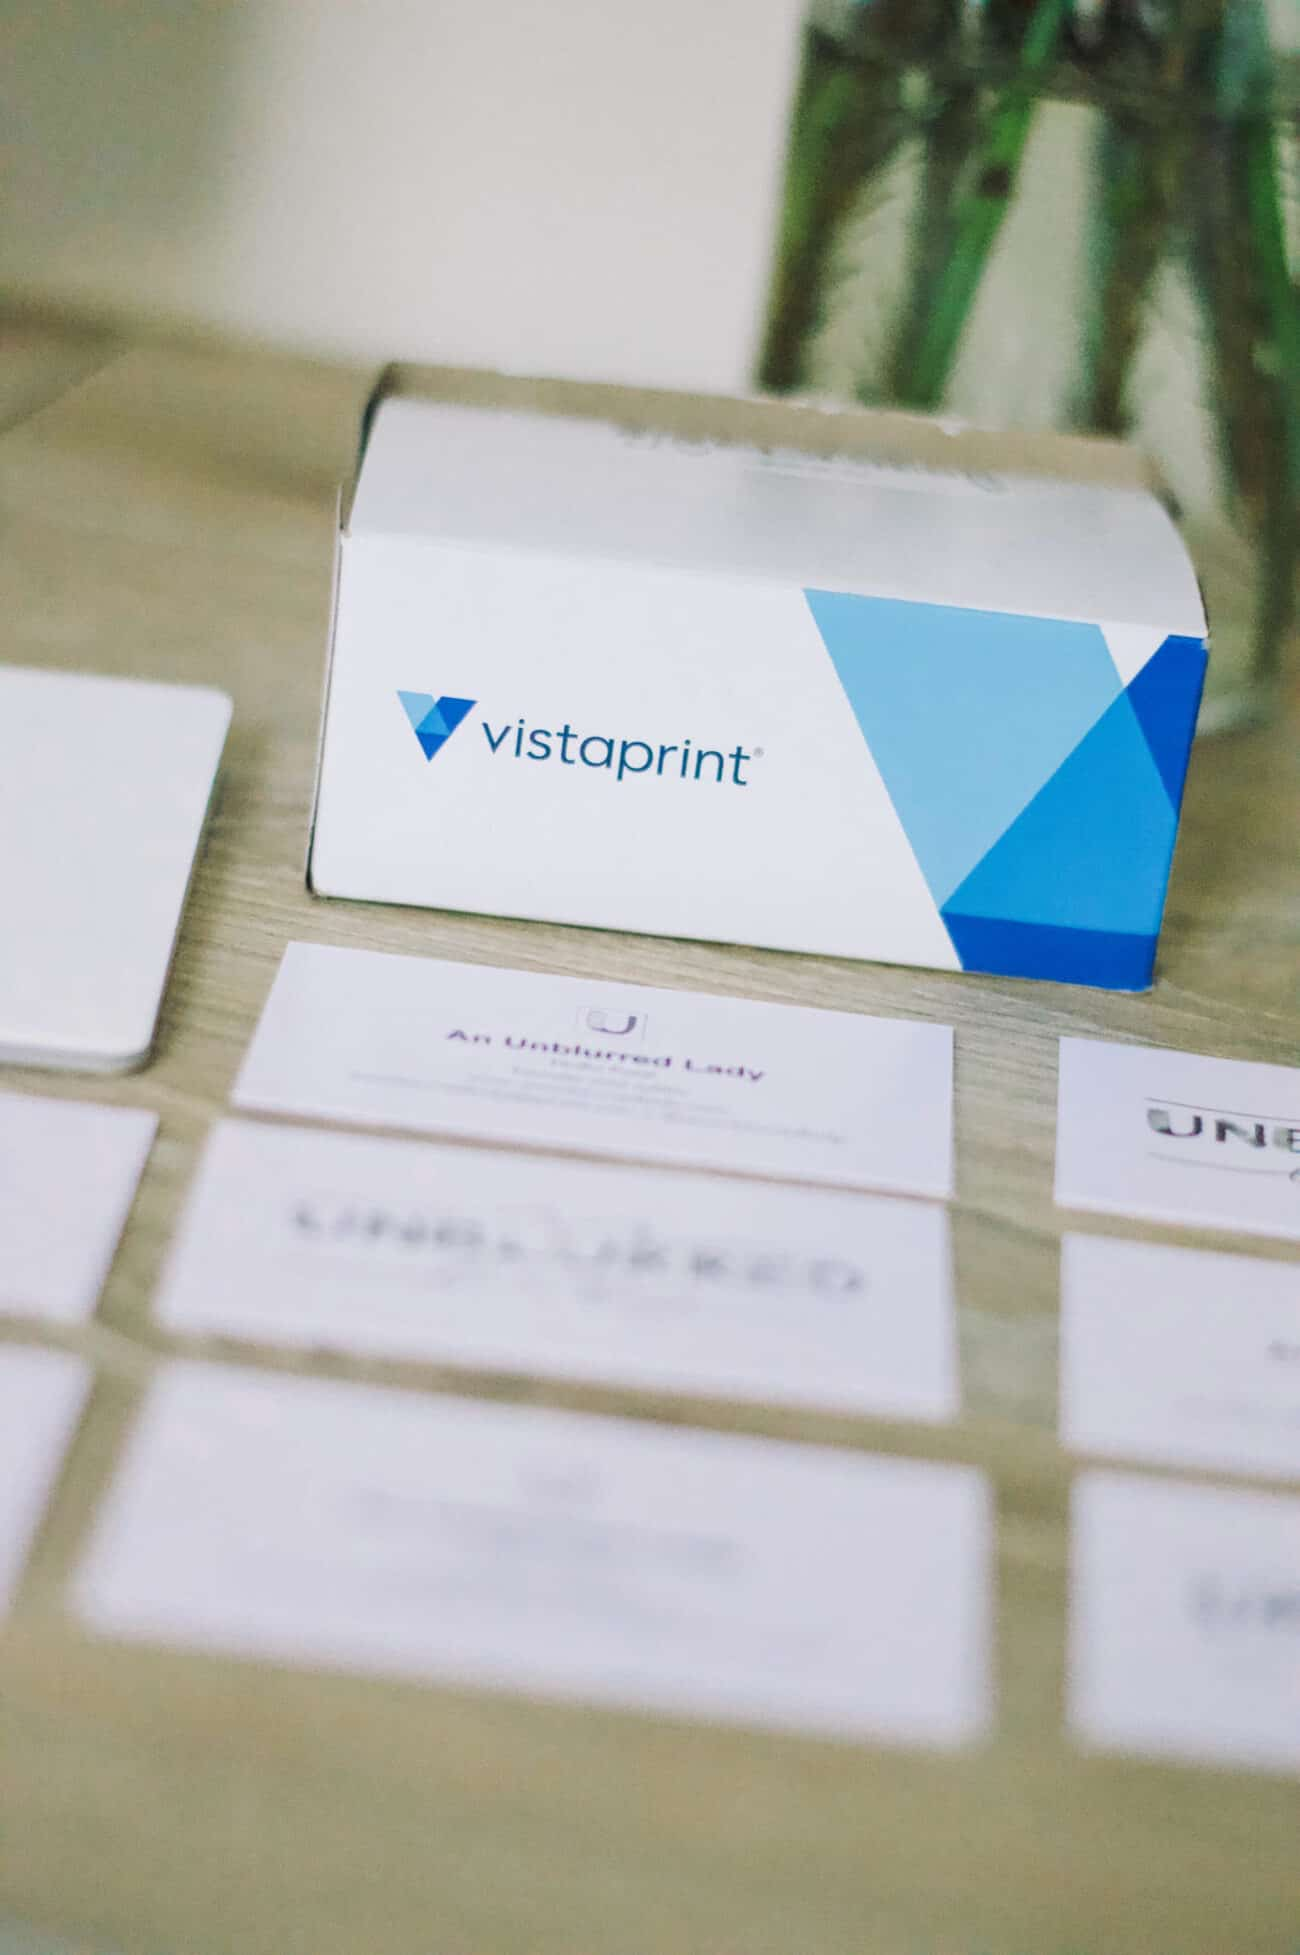 vistaprint business cards - Www Vistaprint Com Business Cards